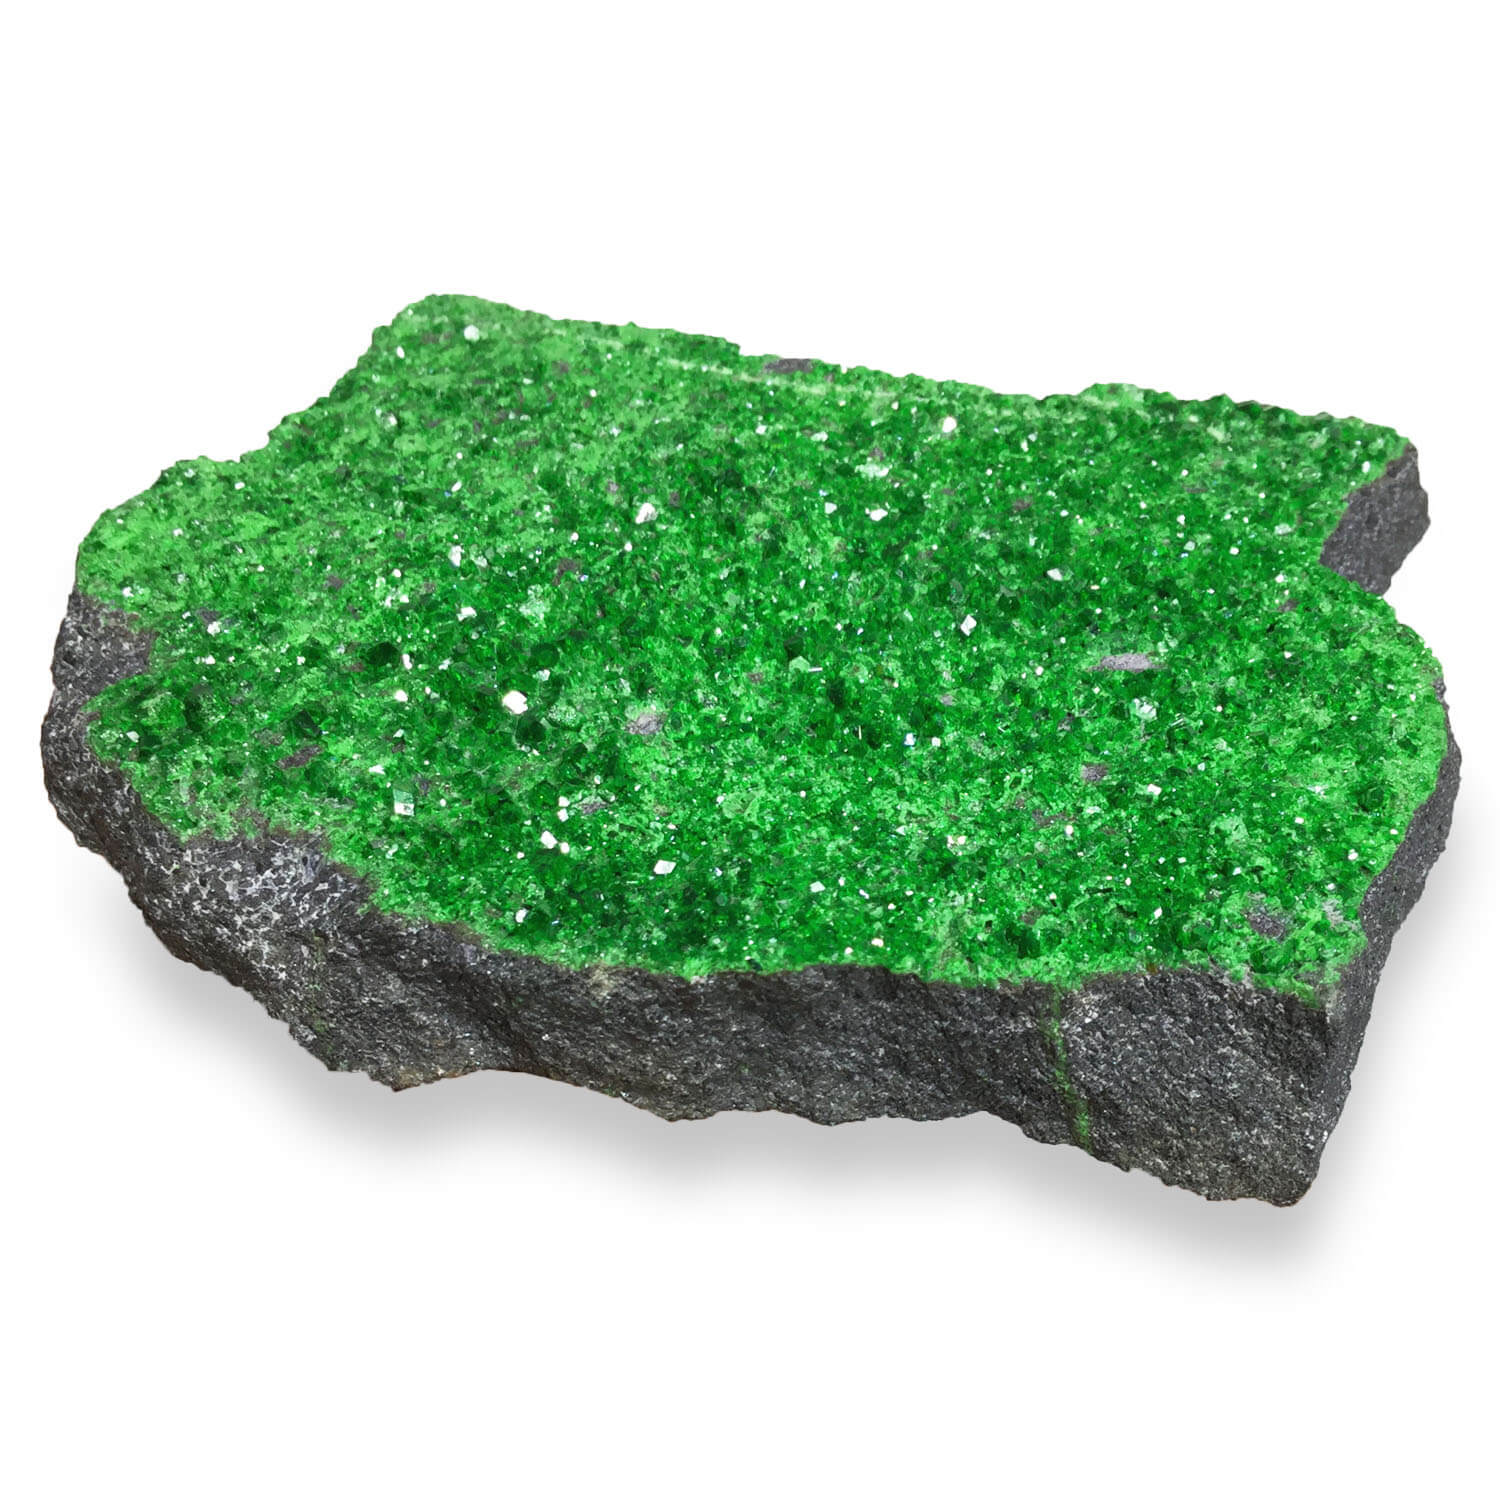 uvarovite Uvarovite's wiki: uvarovite is a chromium -bearing garnet group species with the  all information for uvarovite's wiki comes from the below links any source is valid, including twitter, facebook.